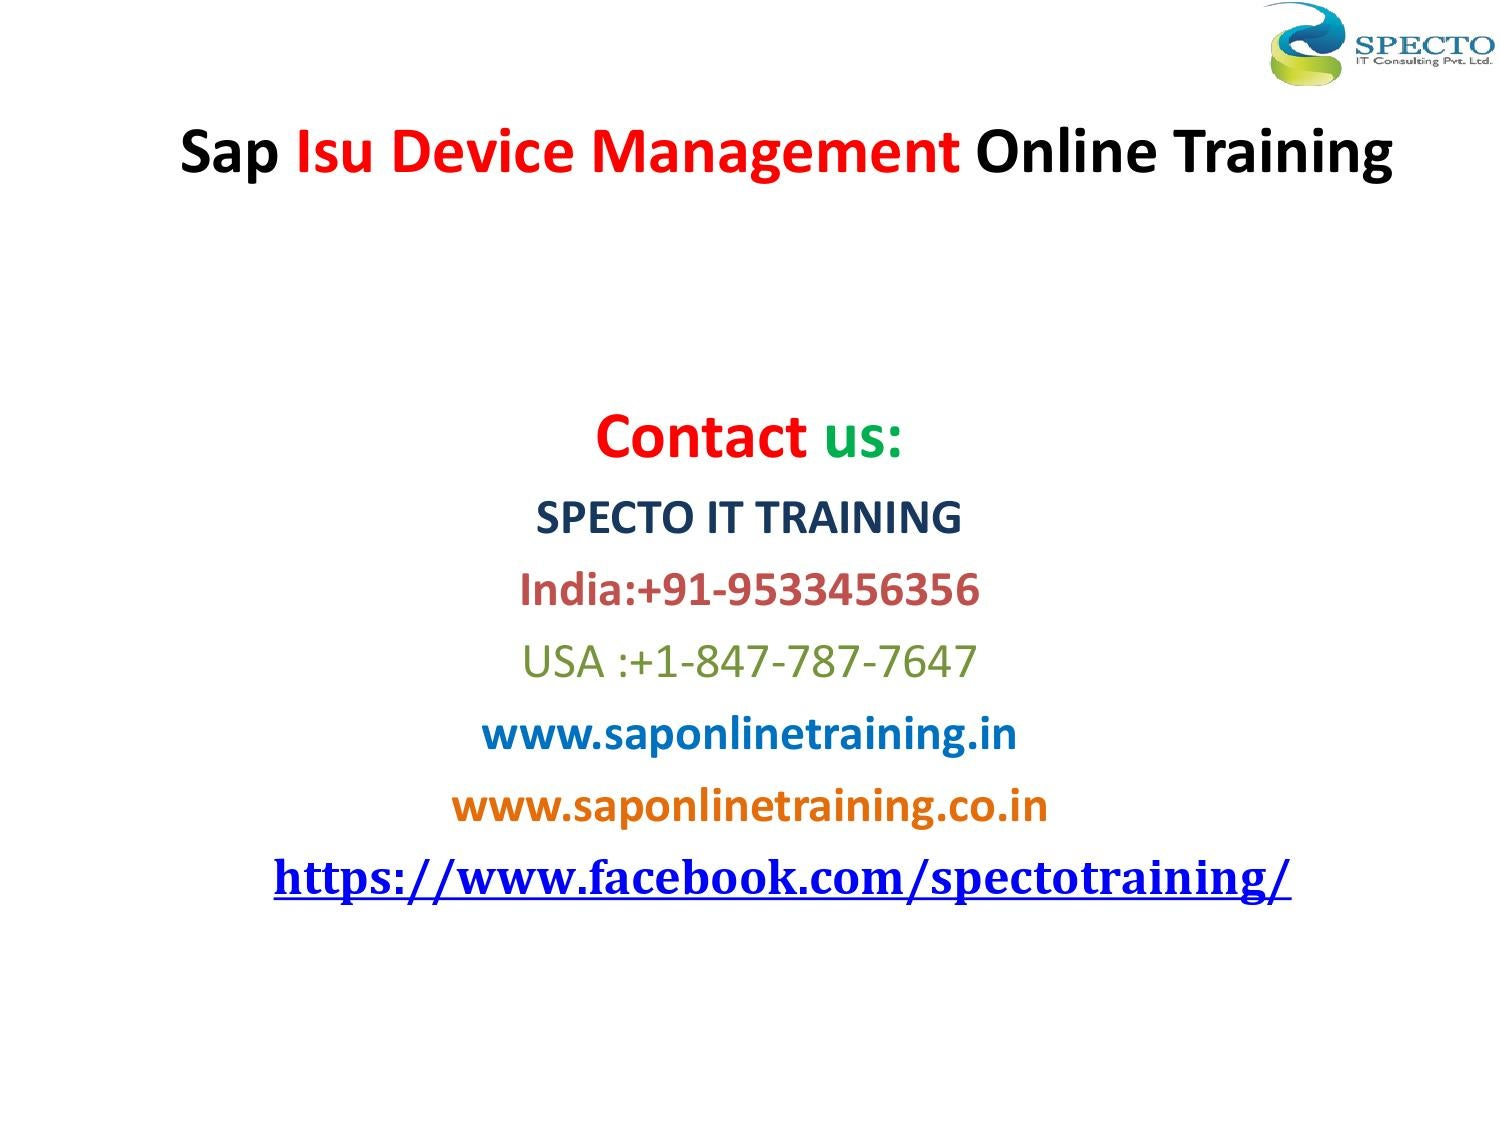 Sap isu device management online training in usa,uk by